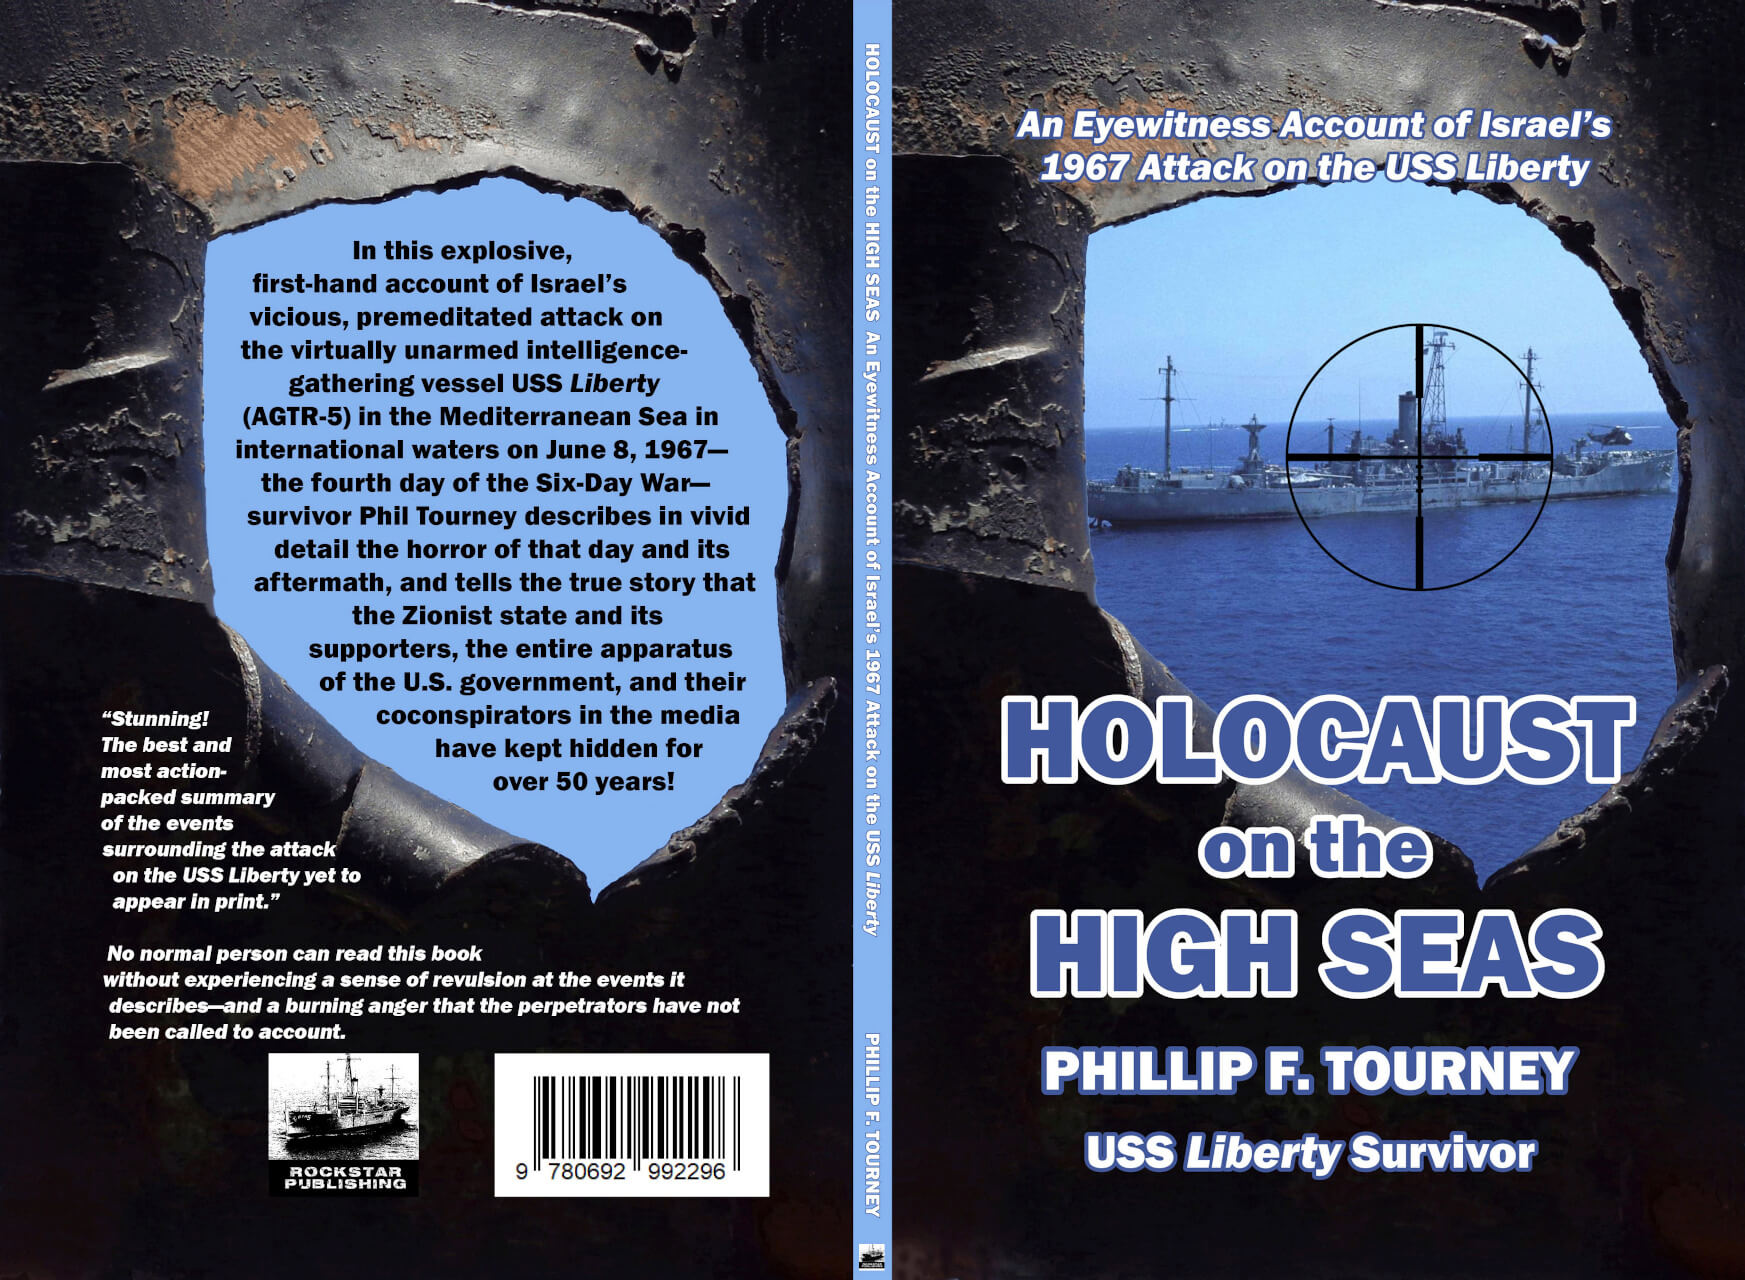 Holocaust on the High Seas Full Cover